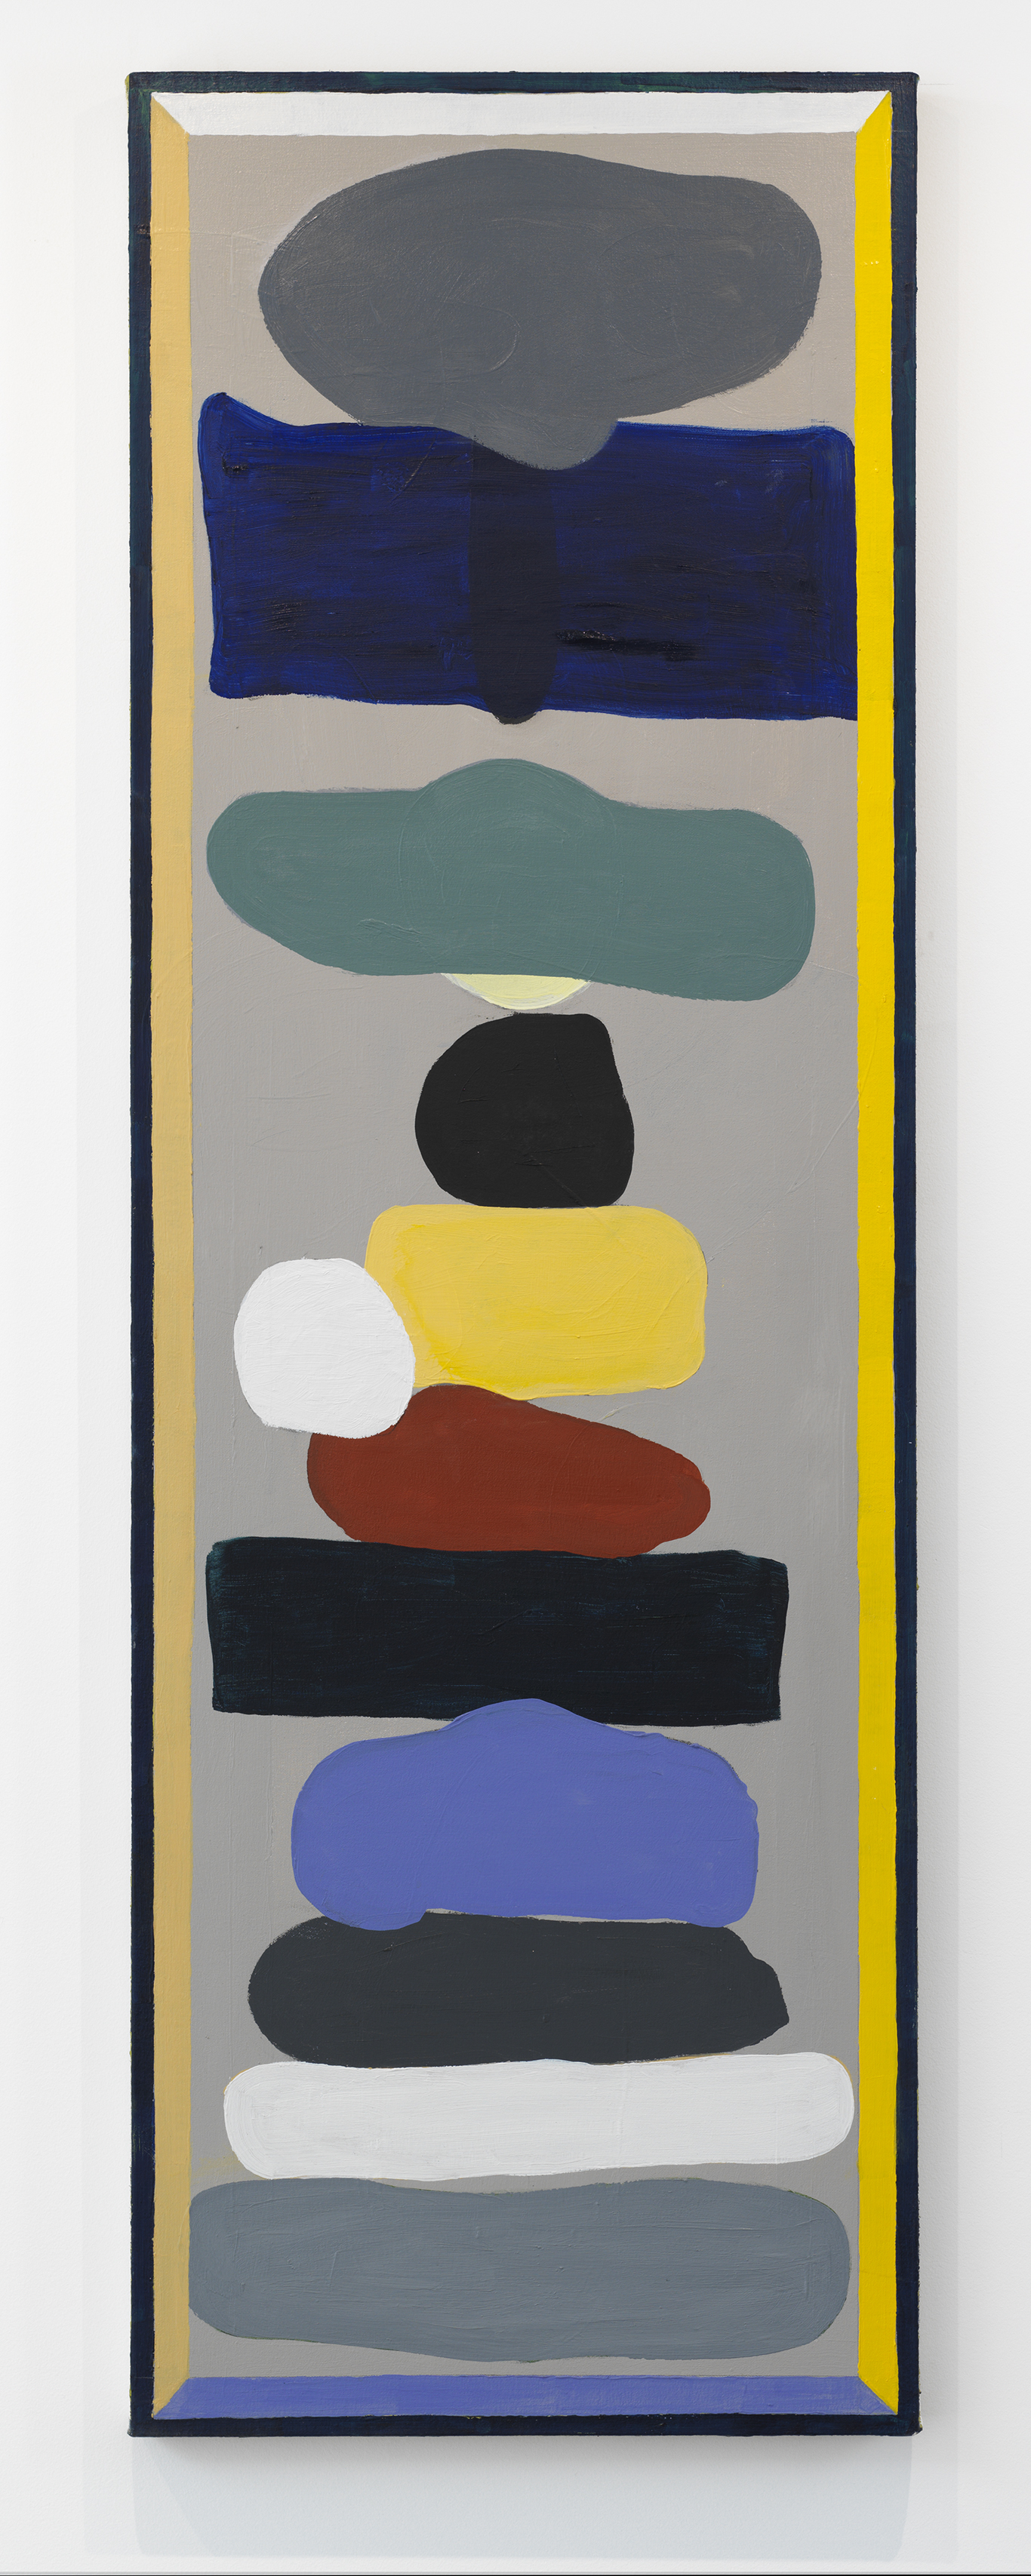 John Obuck  The Stack , 2018 Oil on canvas 22 x 58 inches